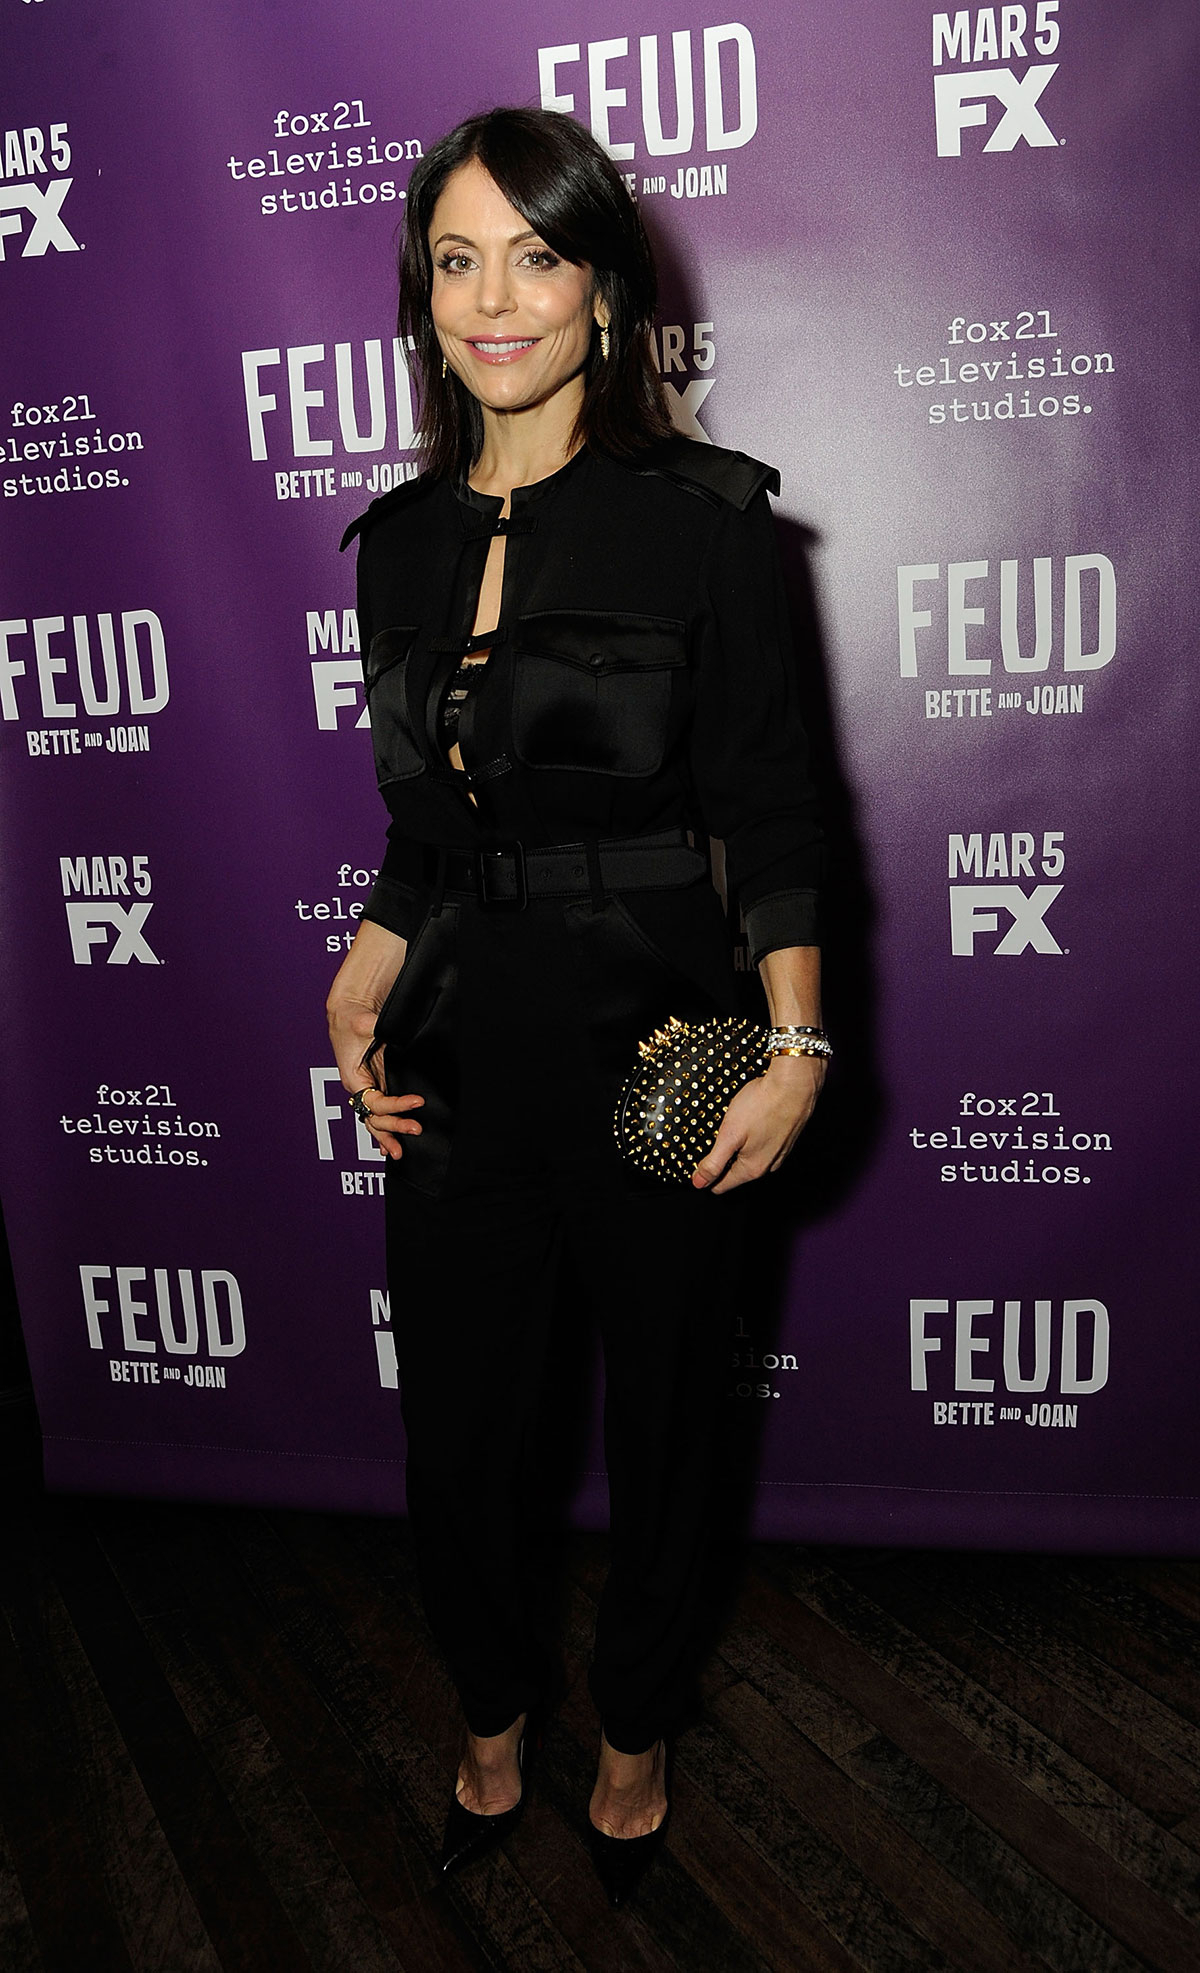 Bethenny Frankel attends the 'Feud' Tastemaker Dinner at The Monkey Bar on February 13, 2017 in New York City.